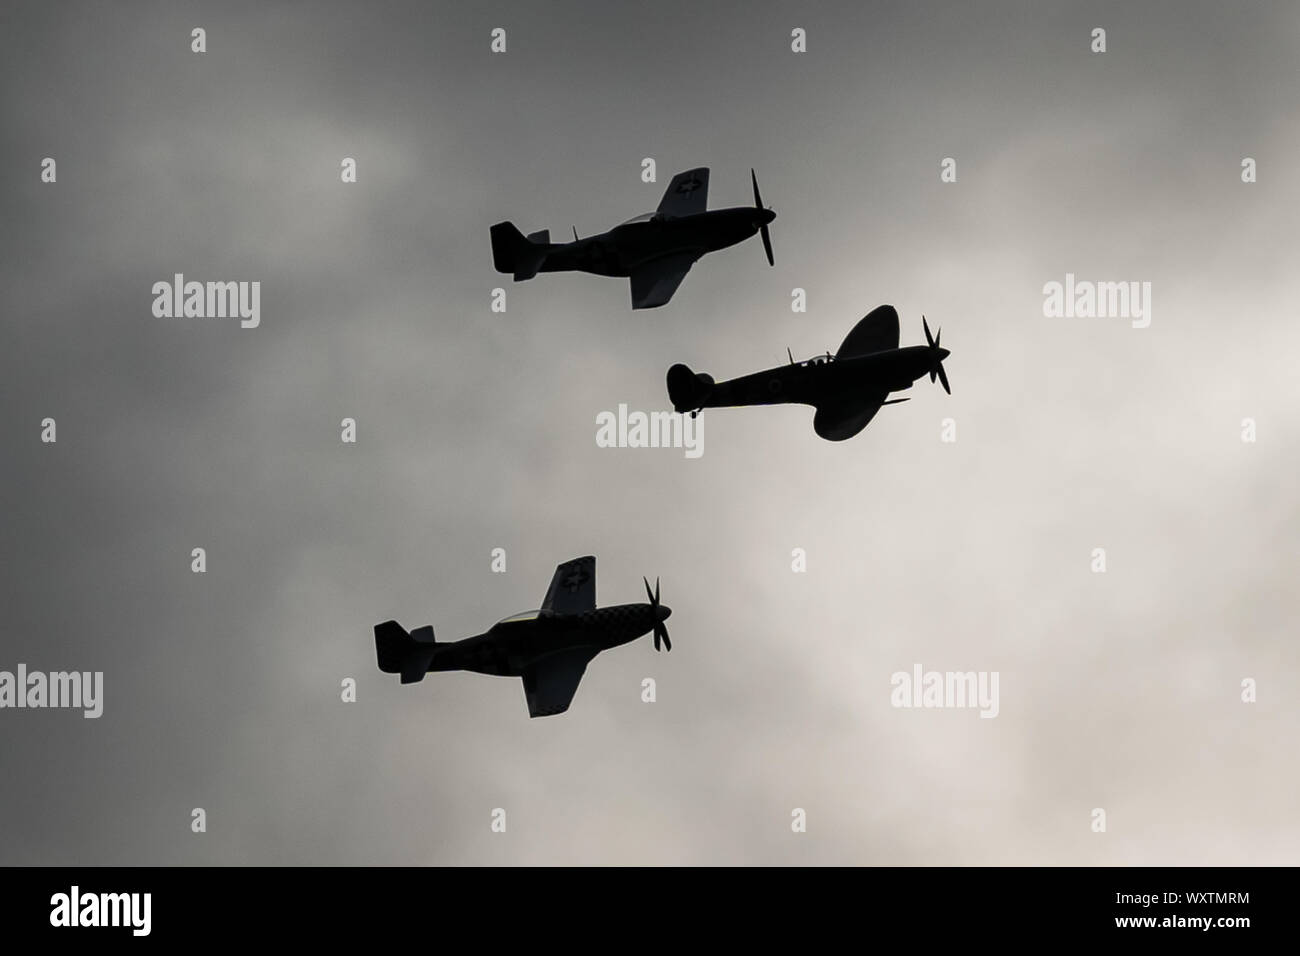 The vintage-themed Goodwood Revival. Britain's greatest annual classic car show. Rolls Royce Merlin Spitfire Mk IX (middle) and two P51D Mustang fighter planes take to the skies starting three days of action at what was once RAF Westhampnett. UK. Stock Photo